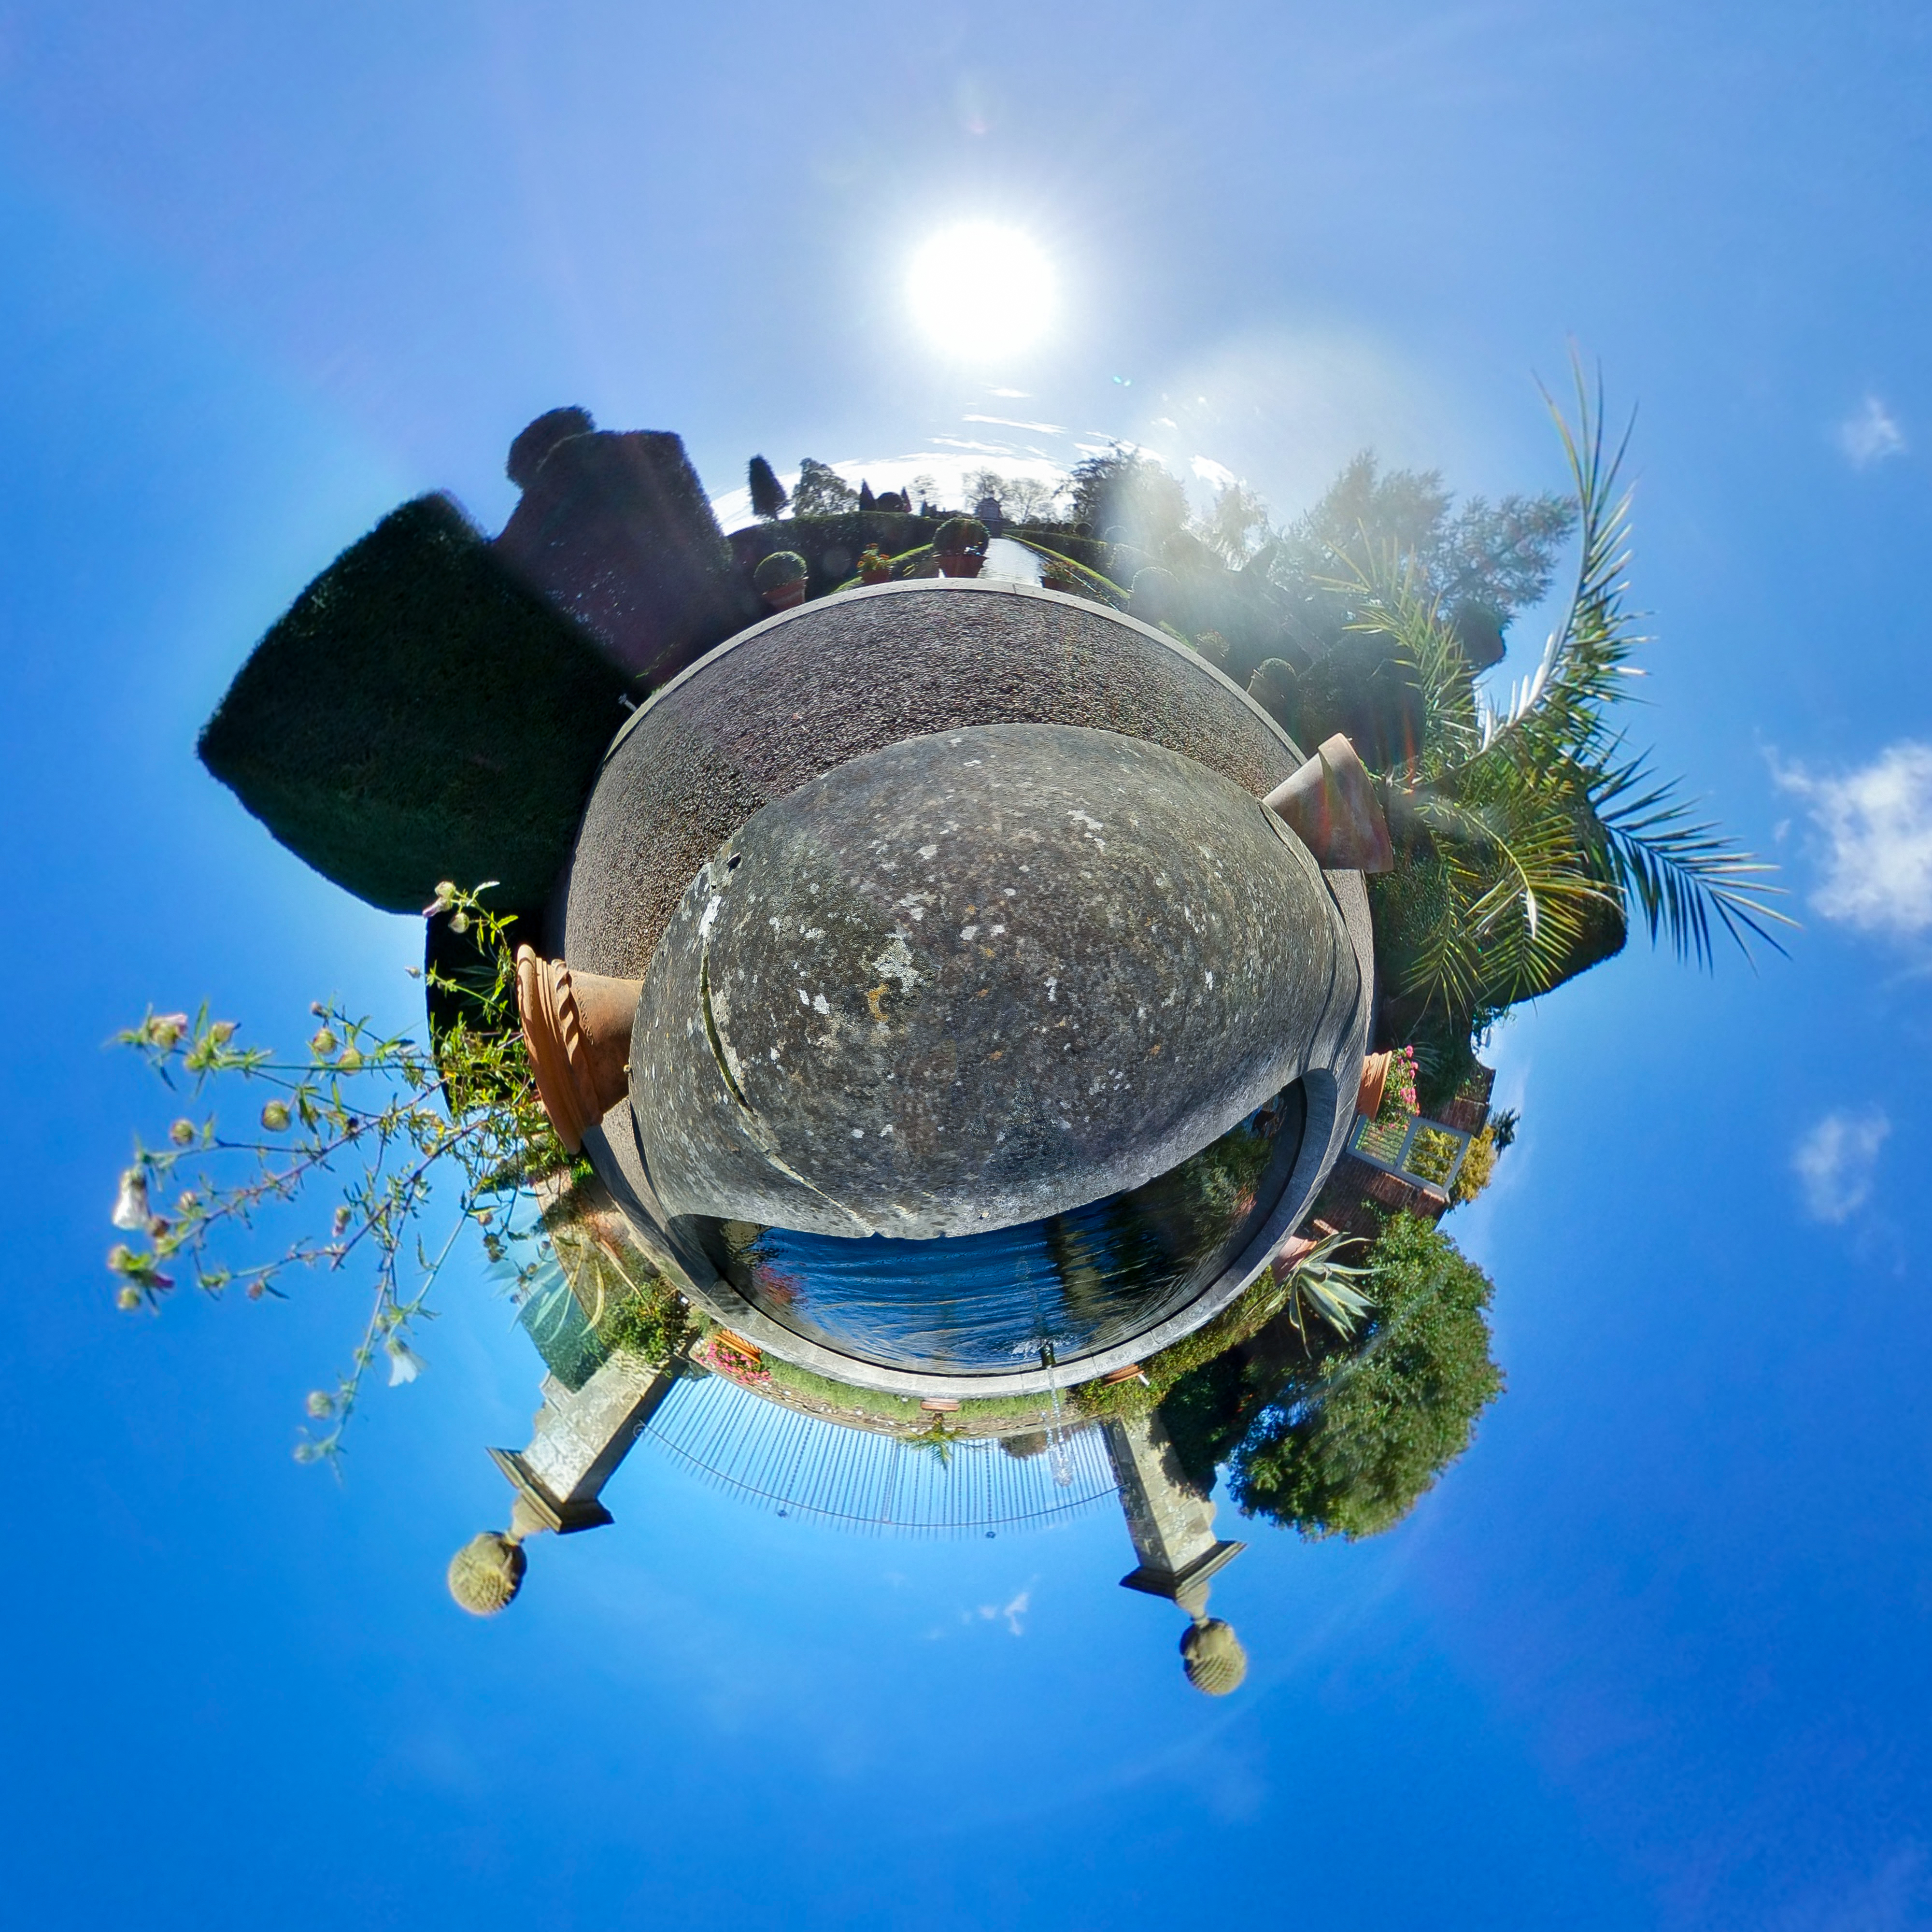 Distorted 360 photo of a classical water garden on a bright summer day, except the garden is circular and the fountain is upside down